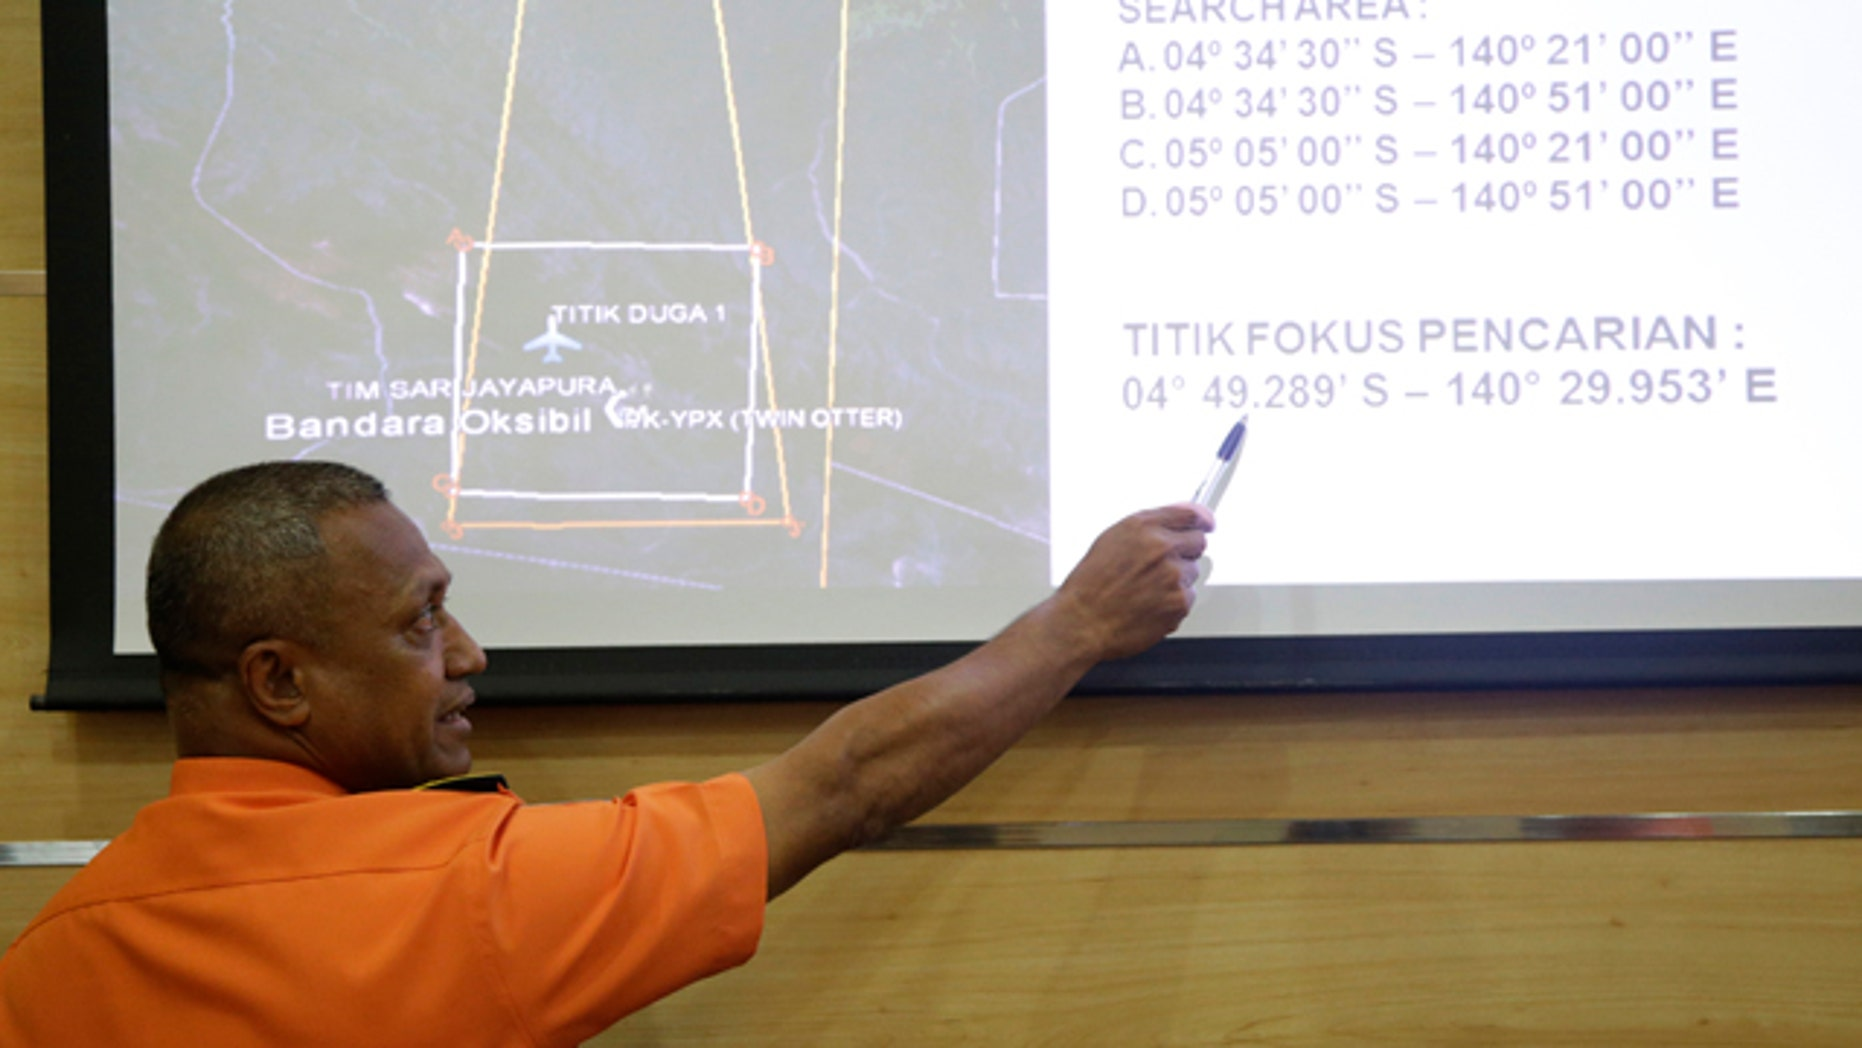 Aug. 17, 2015: National Search And Rescue Agency (BASARNAS) deputy operations director Heronimus Guru explains a search operation for the missing Trigana Air Service flight during a press conference in Jakarta, Indonesia. (AP Photo/Tatan Syuflana)